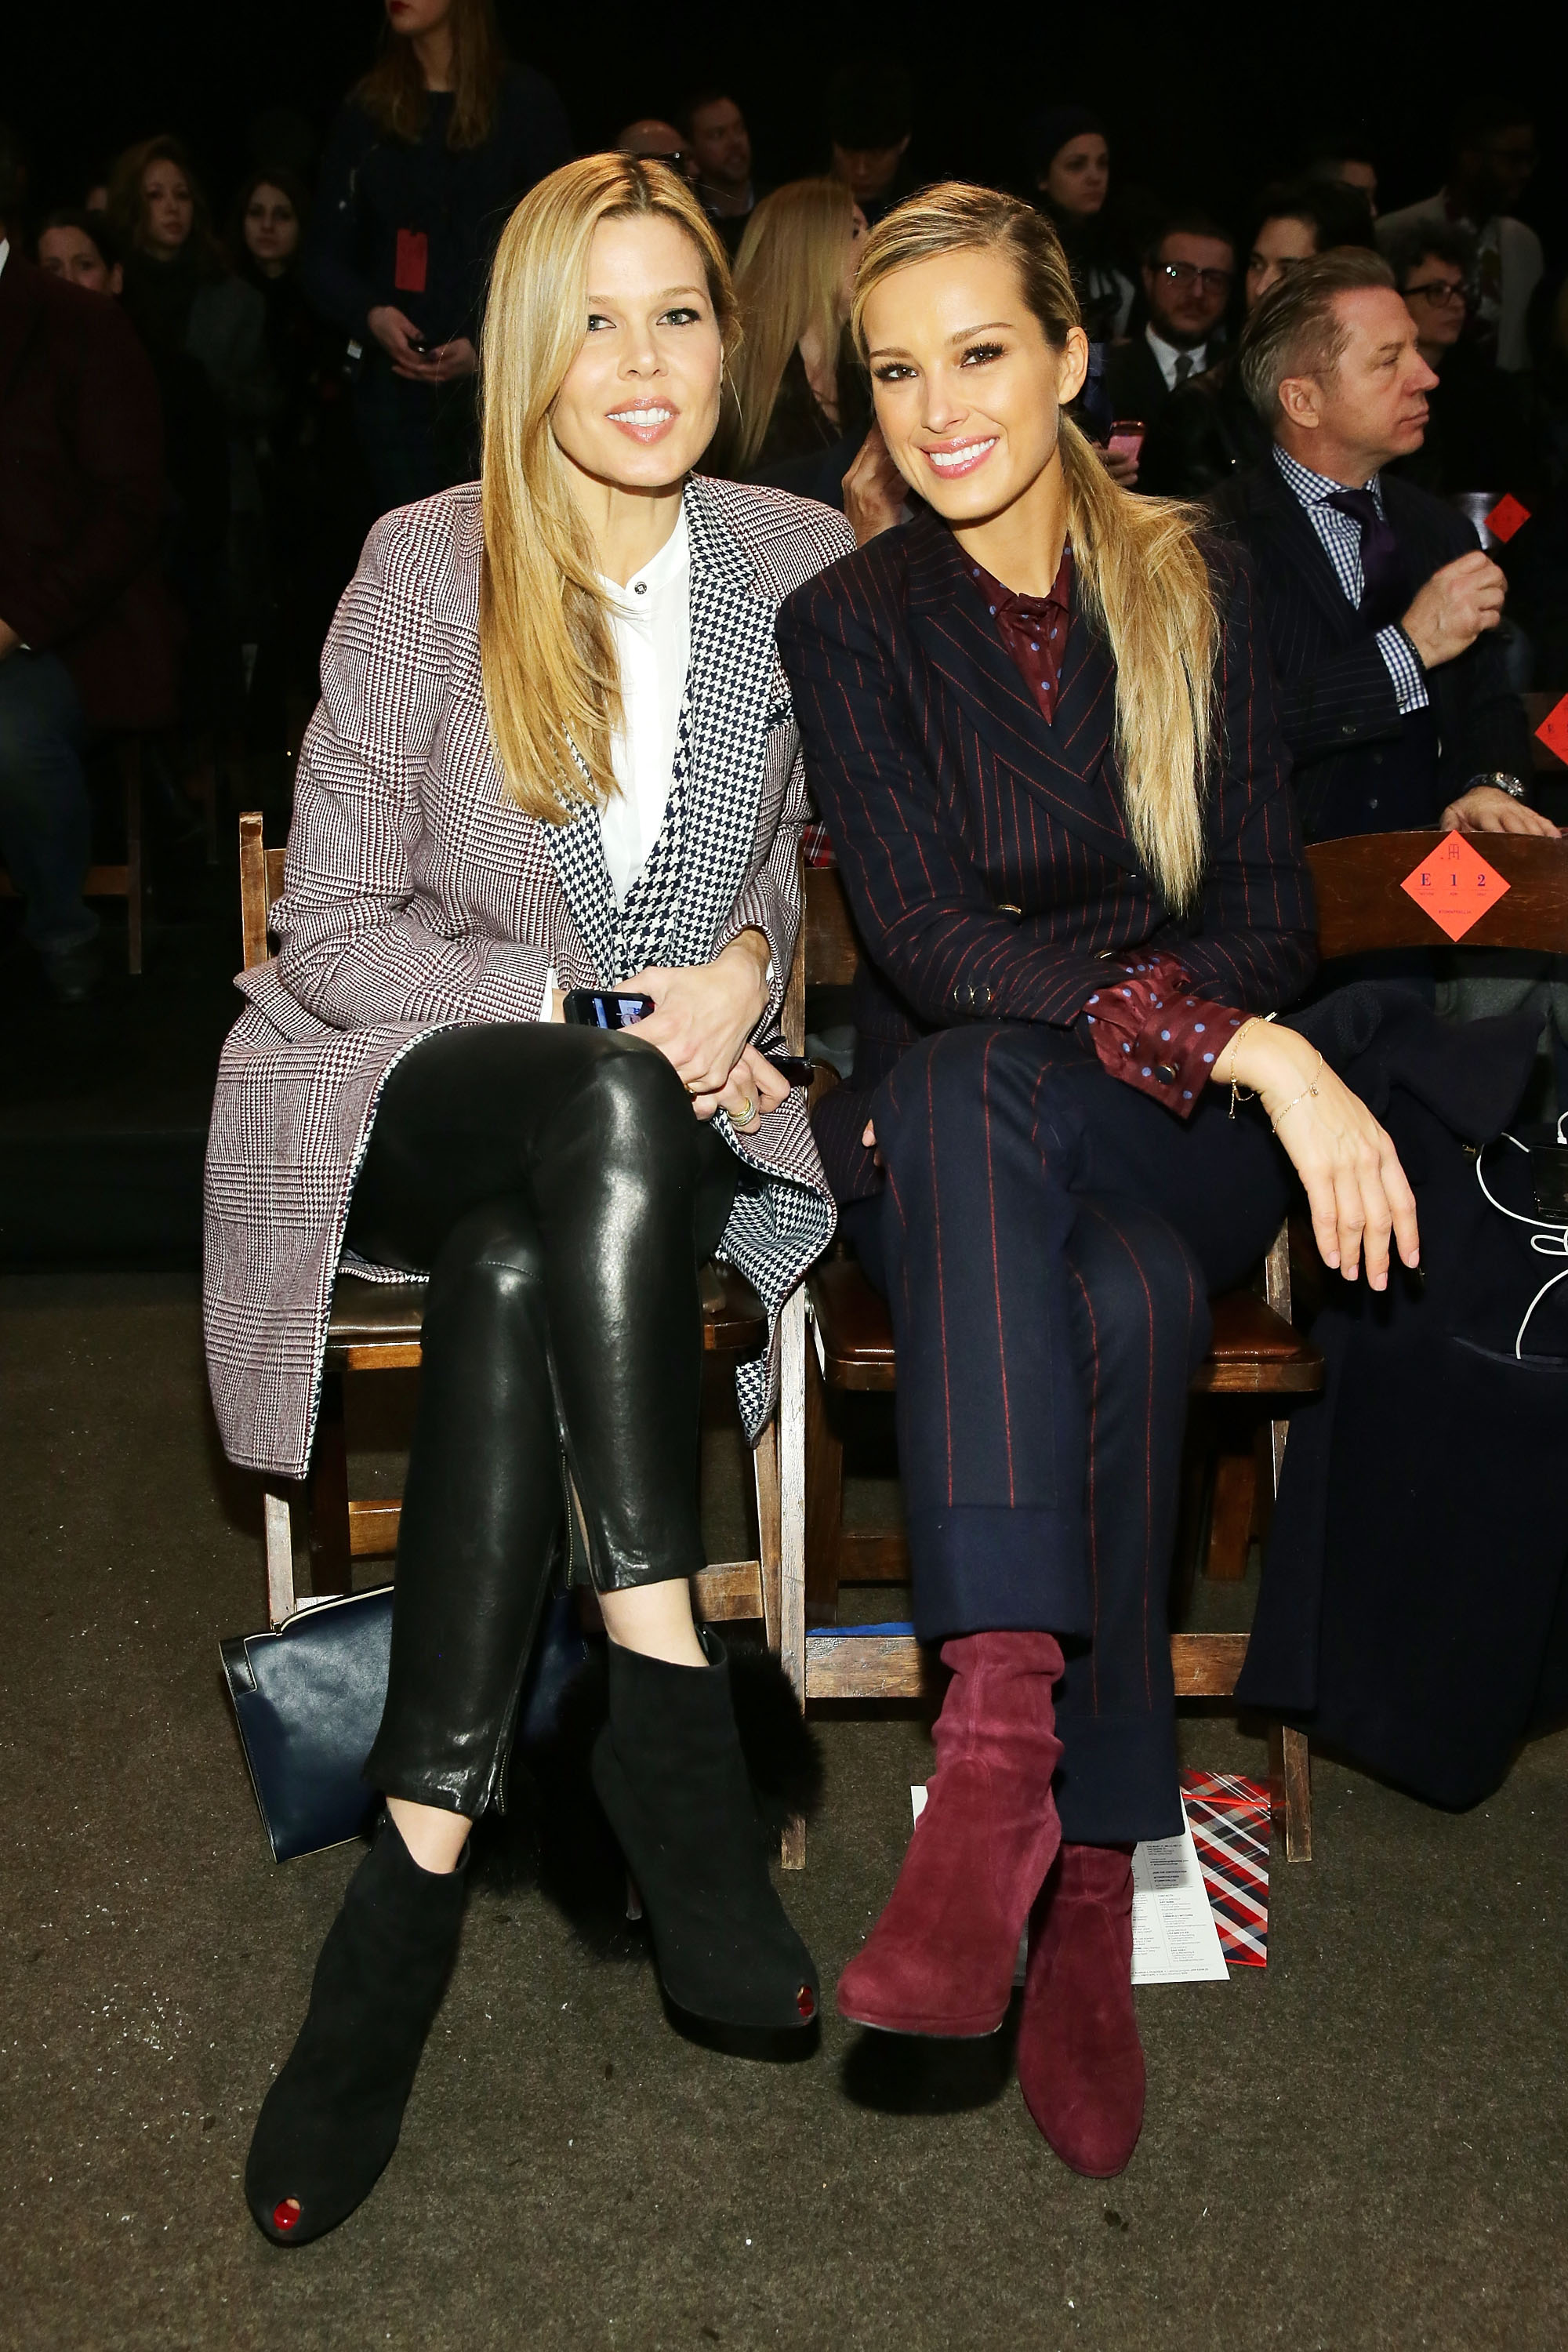 Tommy Hilfiger Presents Fall 2014 Women's Collection - Front Row